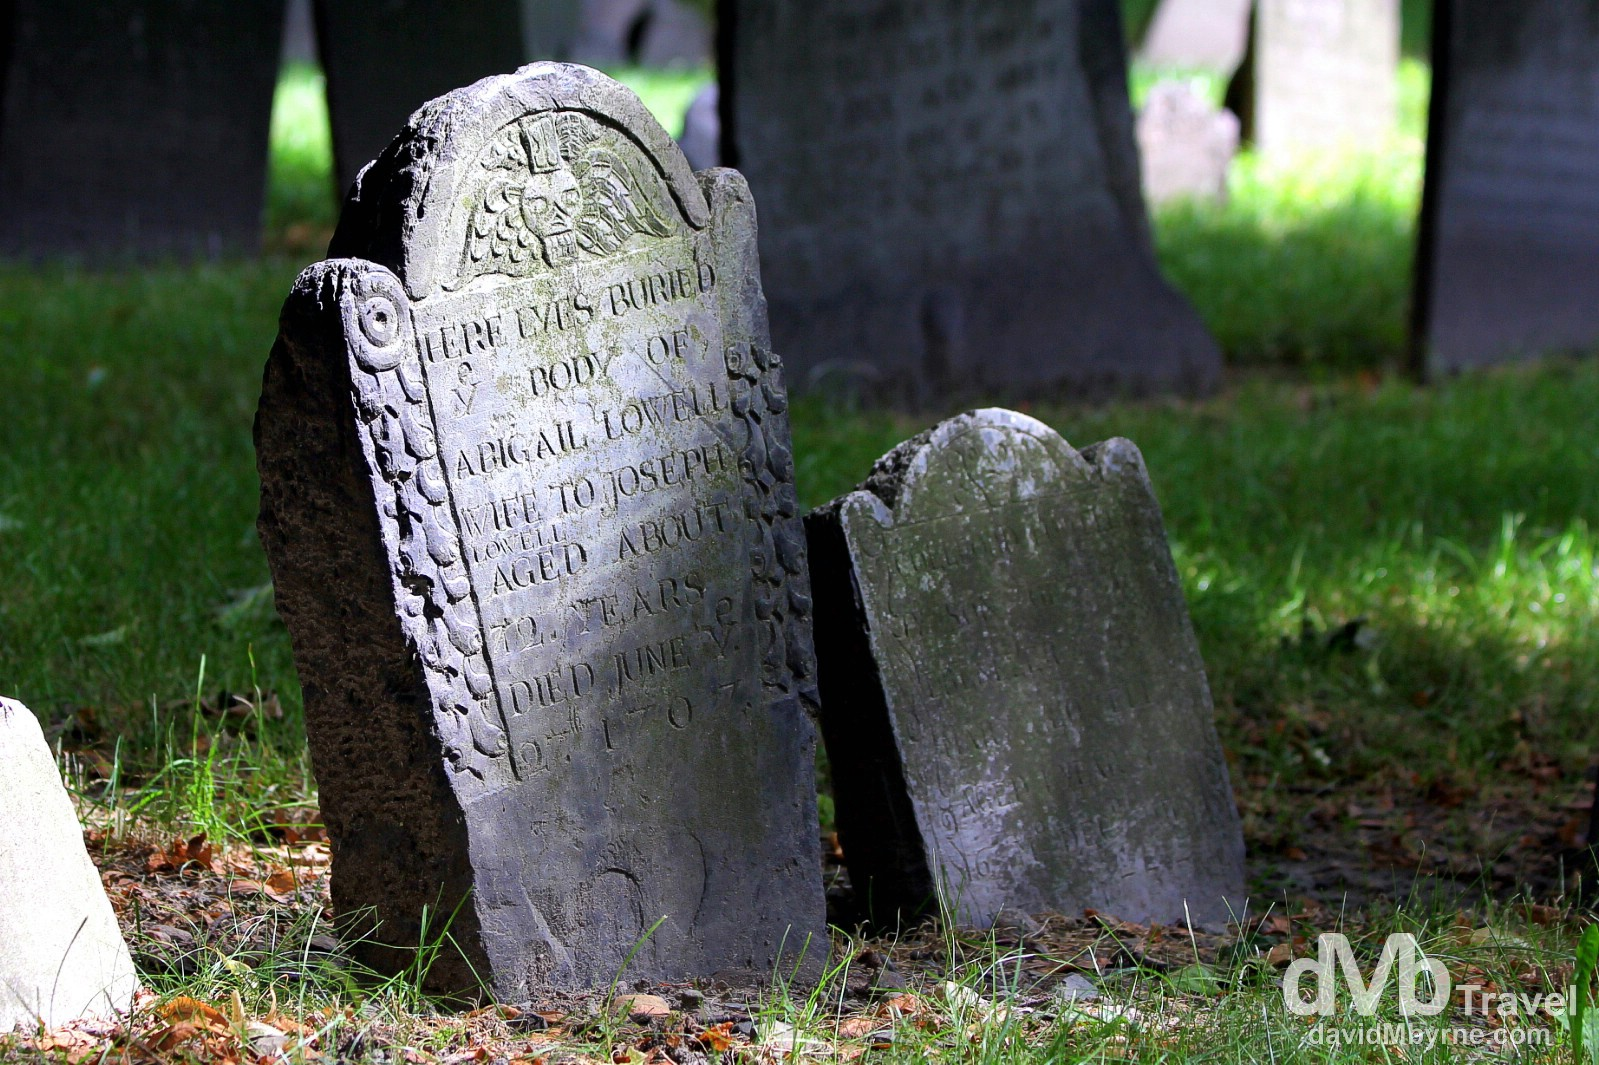 Gravestones in Granary Burying Ground, Tremont Street, Boston. So named because of its proximity to Boston's first granary, the 1660, 2-acre cemetery is one of the oldest historic sites in the city, yet 'only' the third oldest burying ground in Boston - this place is ye olde indeed. It contains 2,345 gravestones and 204 tombs and is the final resting place for may a prominent Bostonian & revolutionary, including John Hancock & Samuel Adams, signers of the American Declaration of Independence. Granary Burying Ground, Tremont Street, Boston, Massachusetts, USA. July 15th 2013.